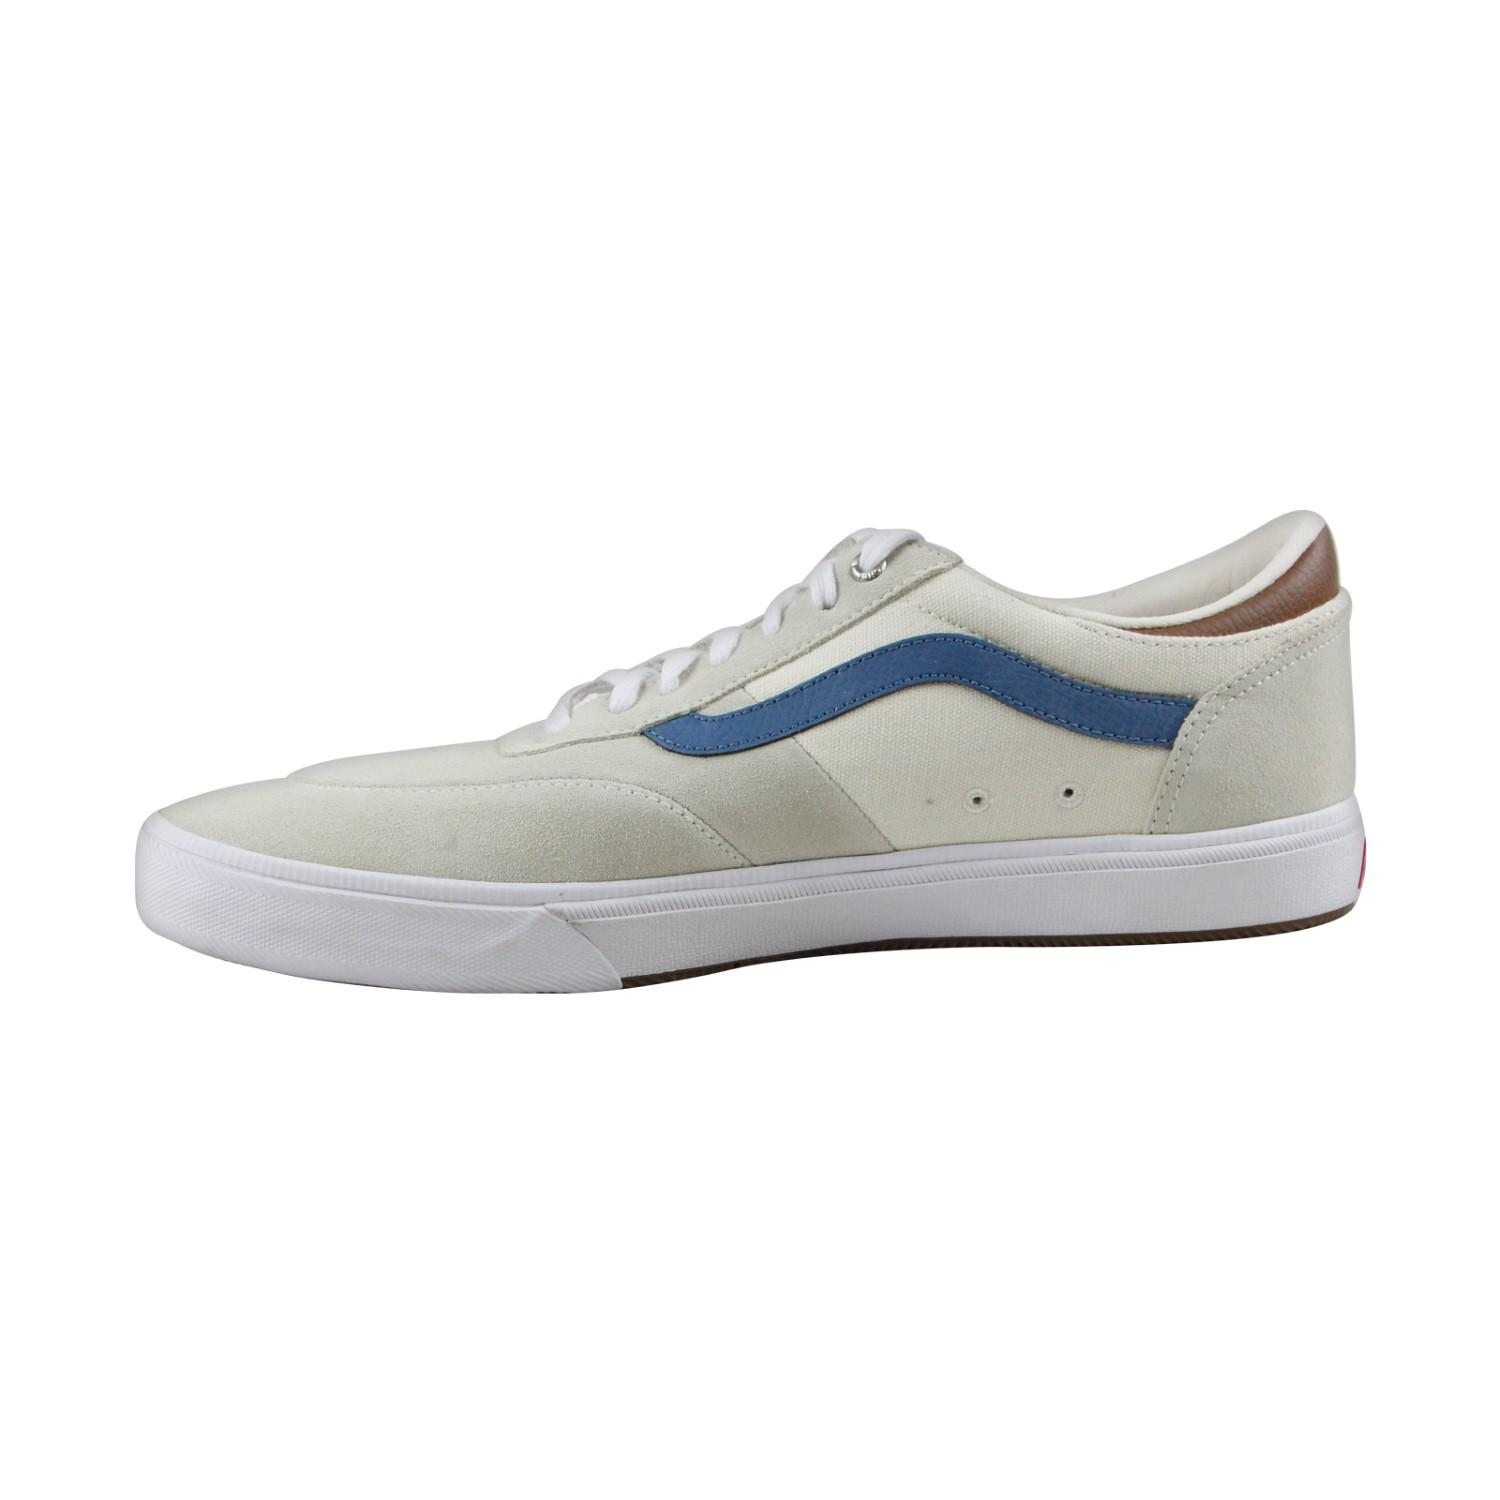 9941cdc030 Lyst - Vans Gilbert Crockett Antique White Lace Up Sneakers in ...